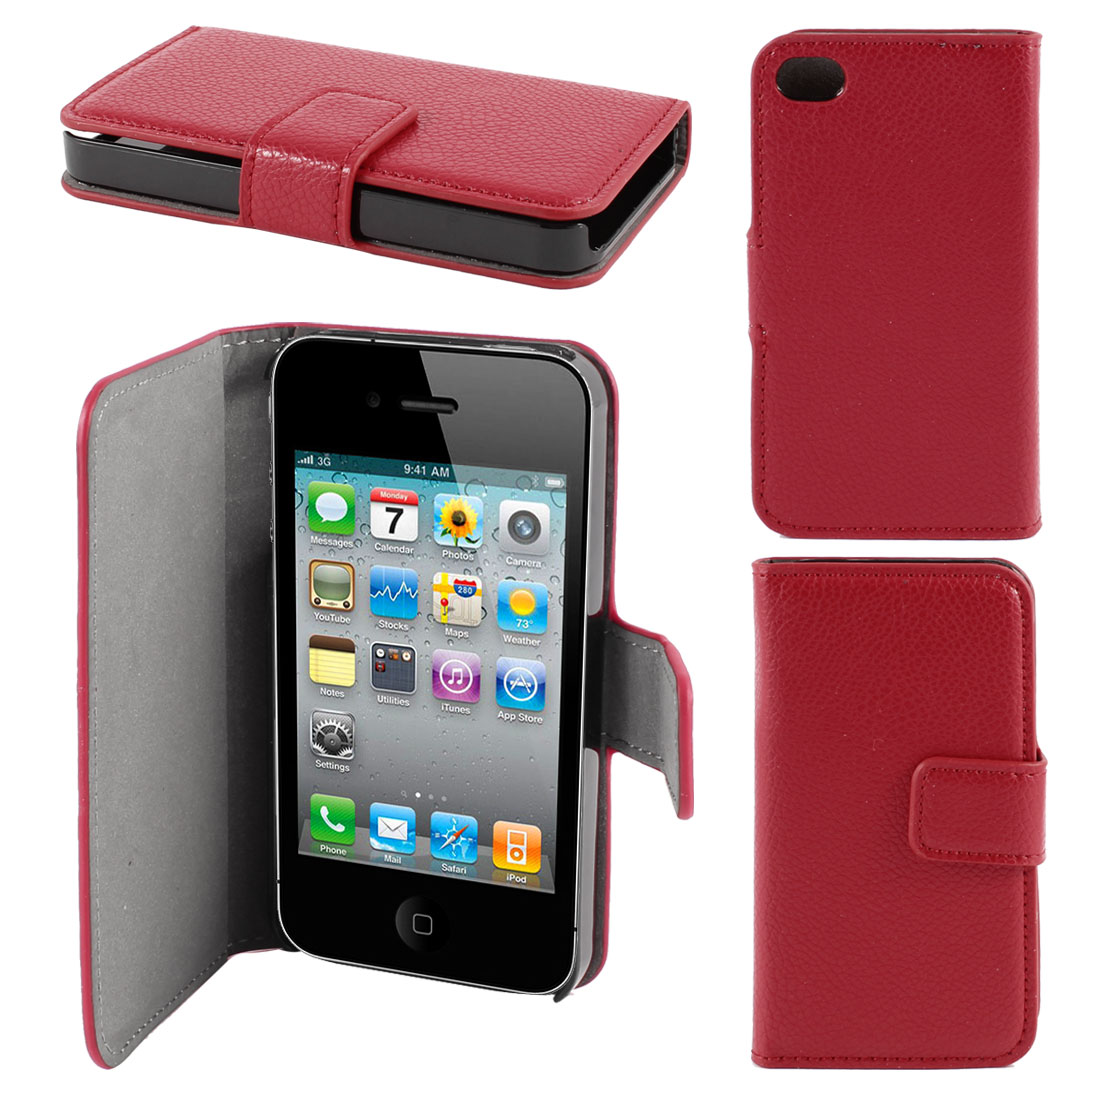 Dark Red Faux Leather Flap Case Cover Pouch Shell for Apple iPhone 4 4G 4th Gen